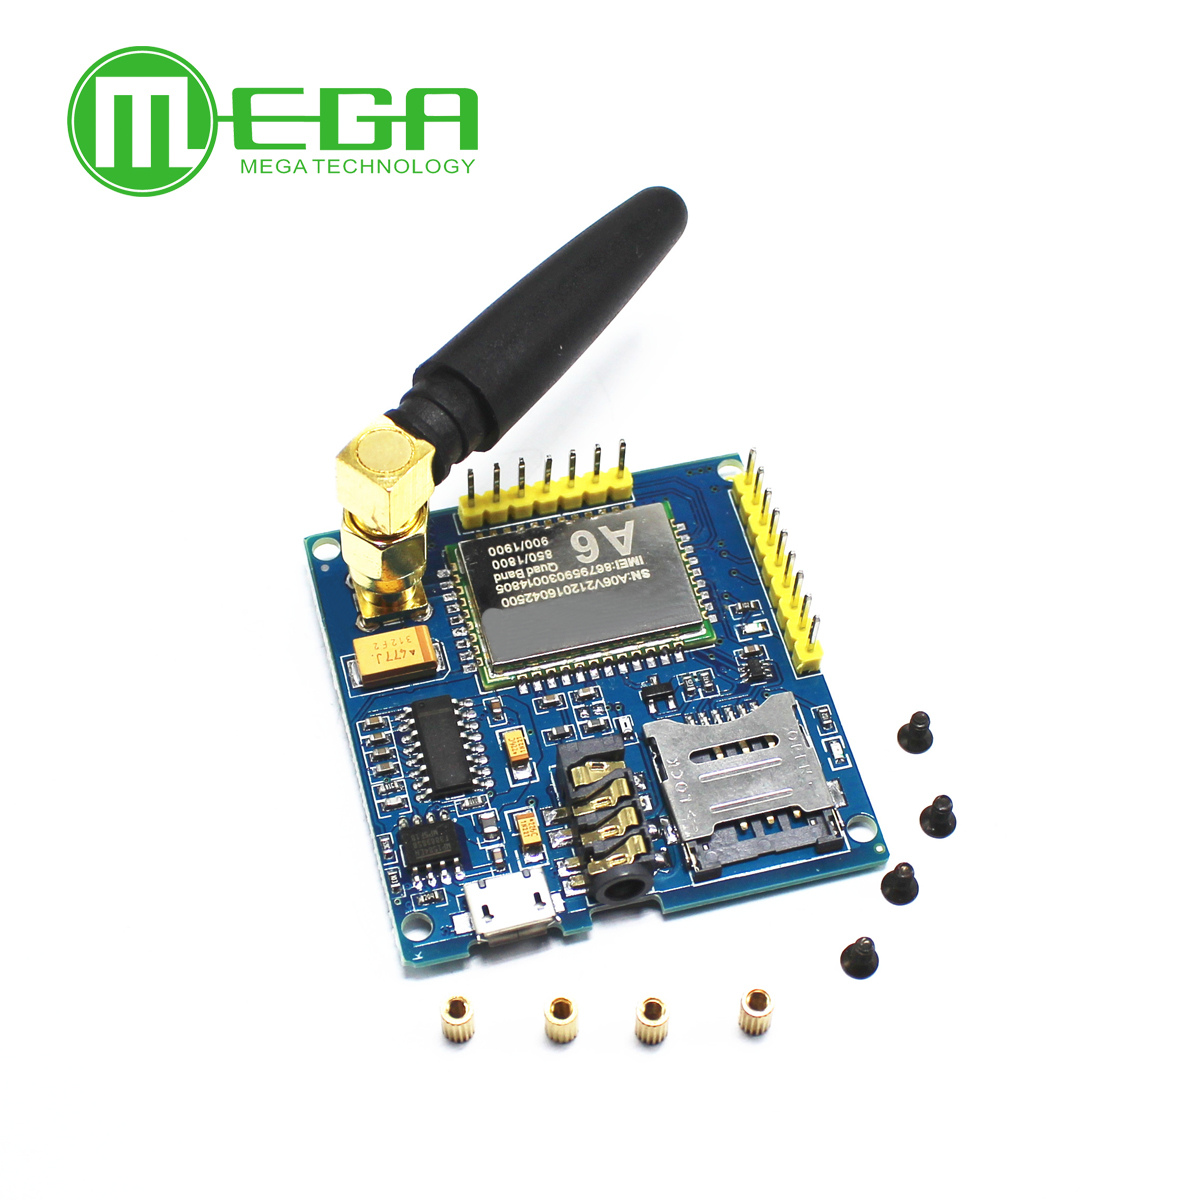 GPRS A6 Module, Text Messages, Development Board GSM GPRS Wireless Data Transmission of Super SIM900AGPRS A6 Module, Text Messages, Development Board GSM GPRS Wireless Data Transmission of Super SIM900A